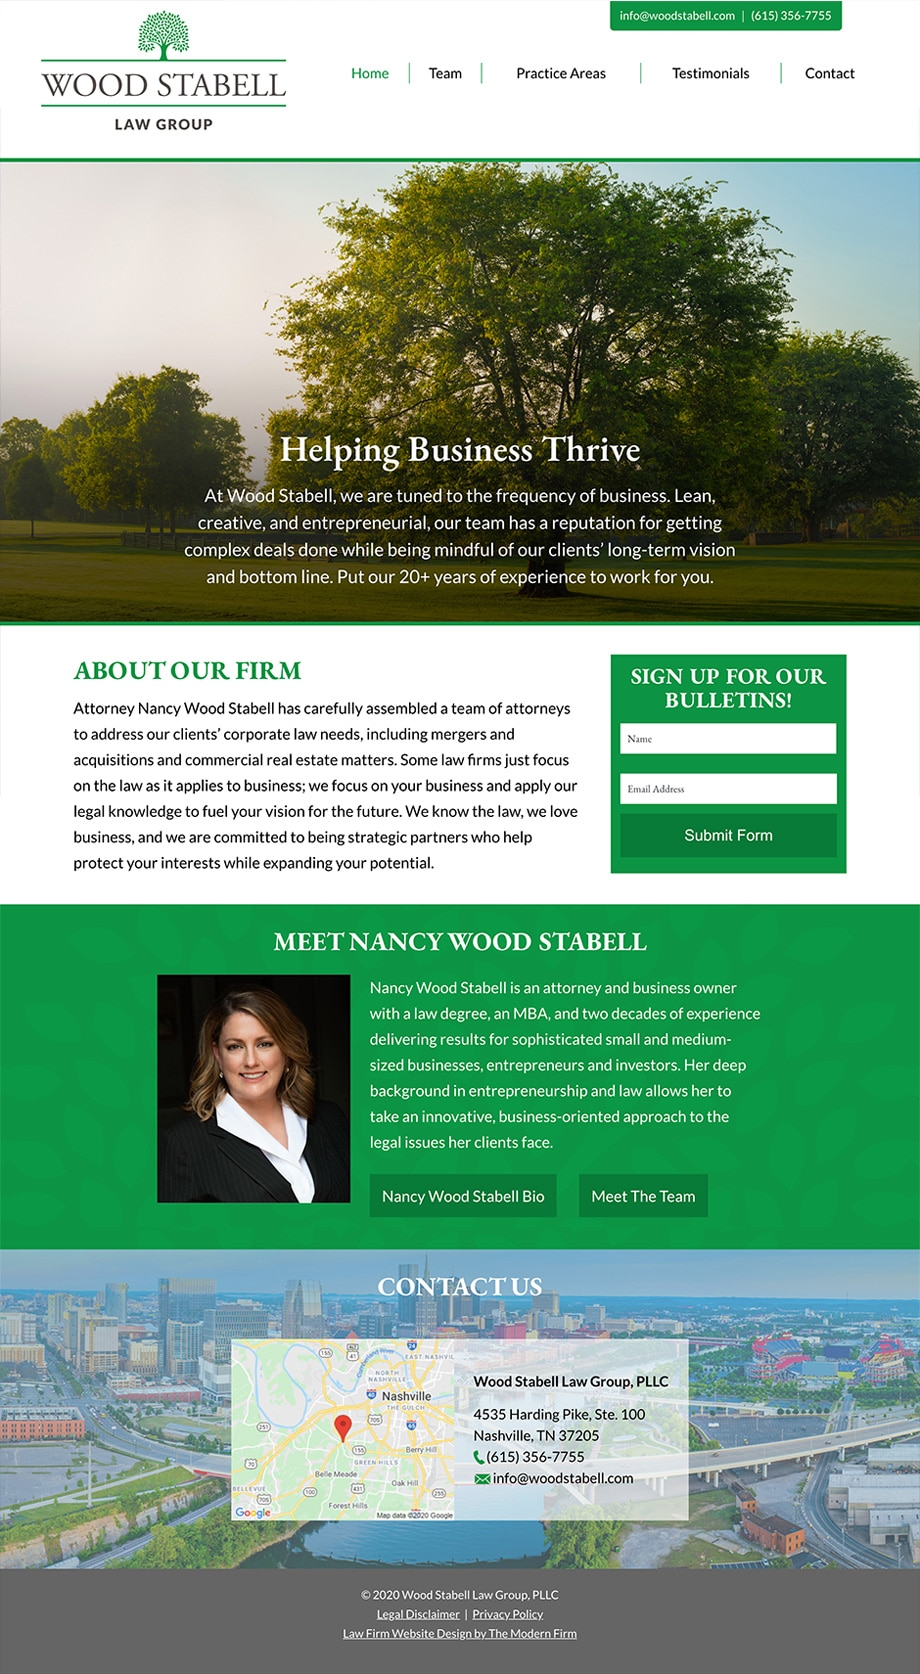 Law Firm Website Design for Wood Stabell Law Group, PLLC